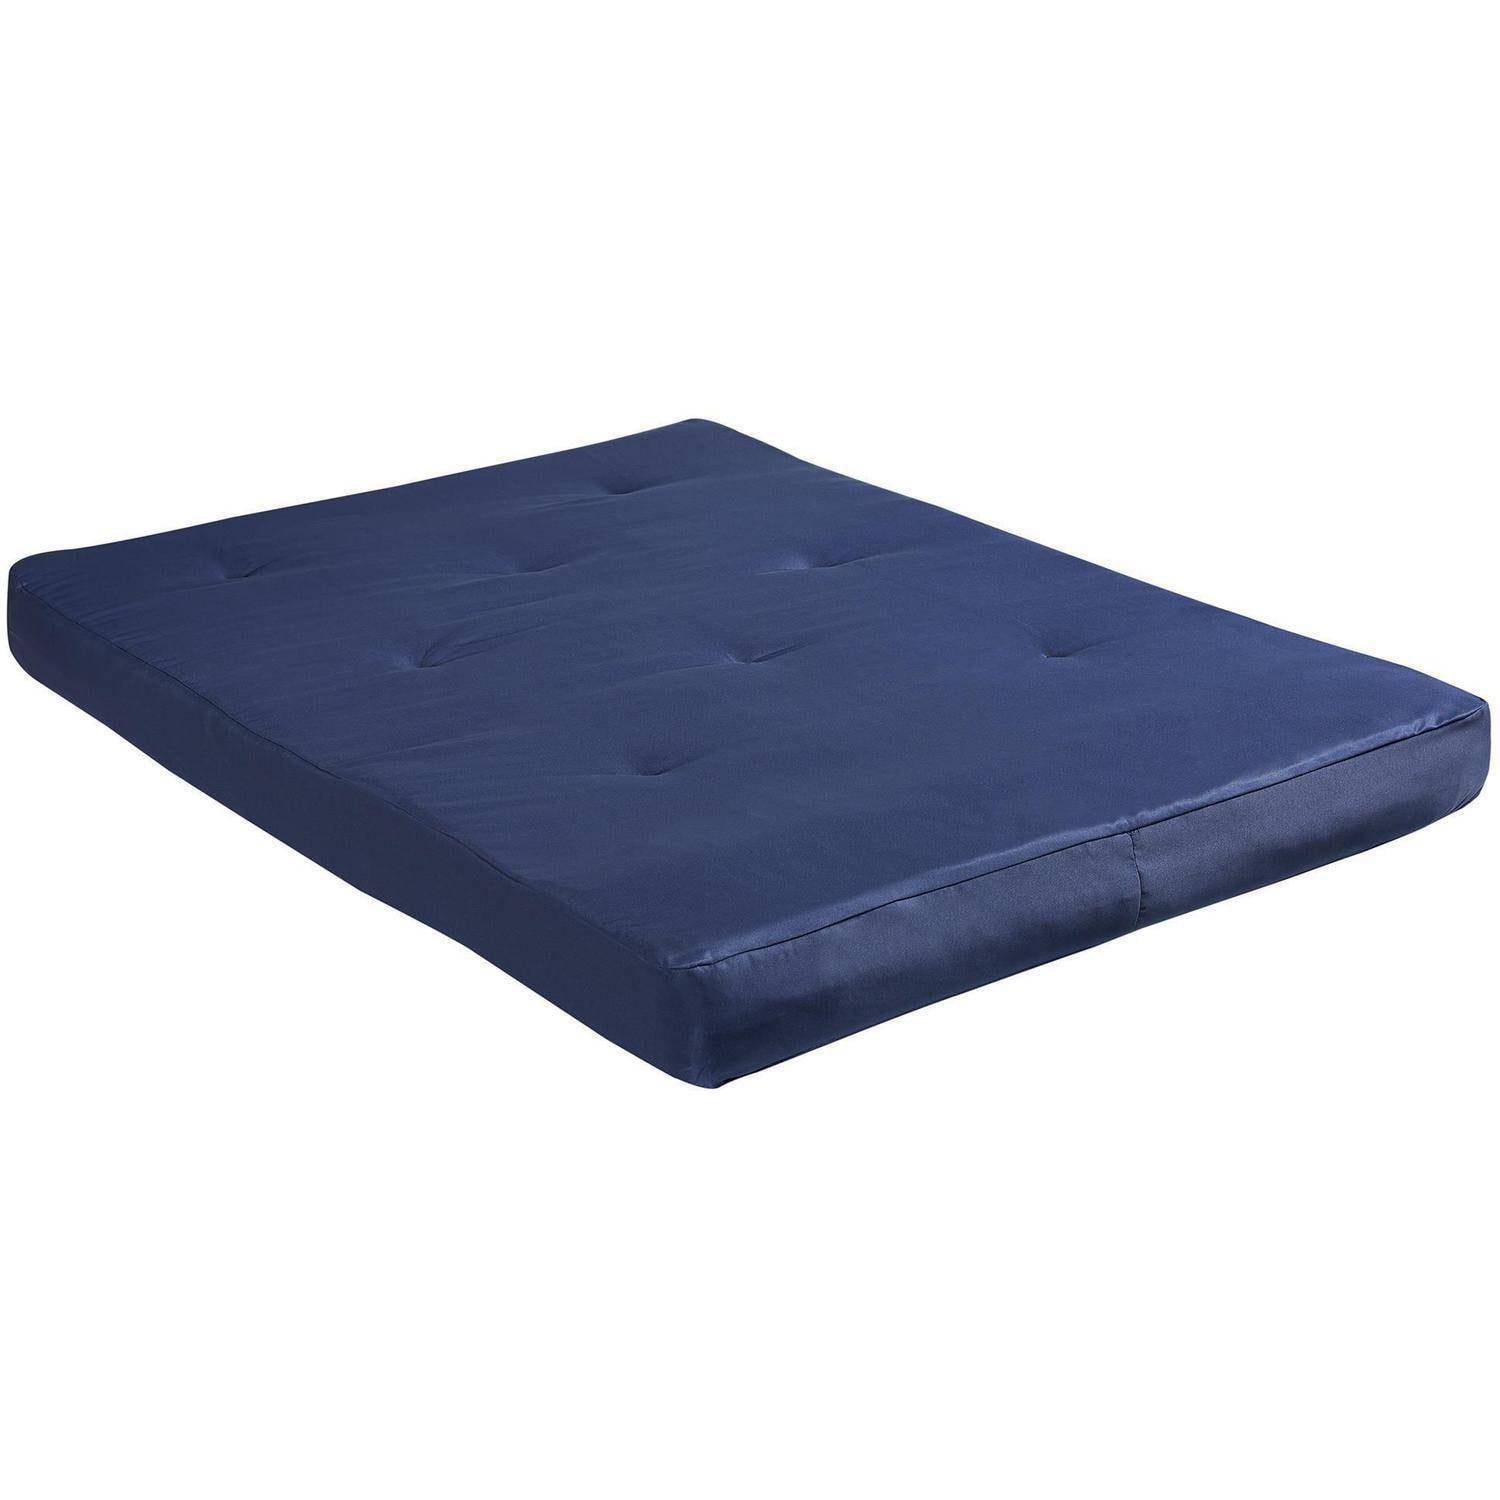 "DHP 8"" Futon Mattress Full Size Navy Blue Walmart"